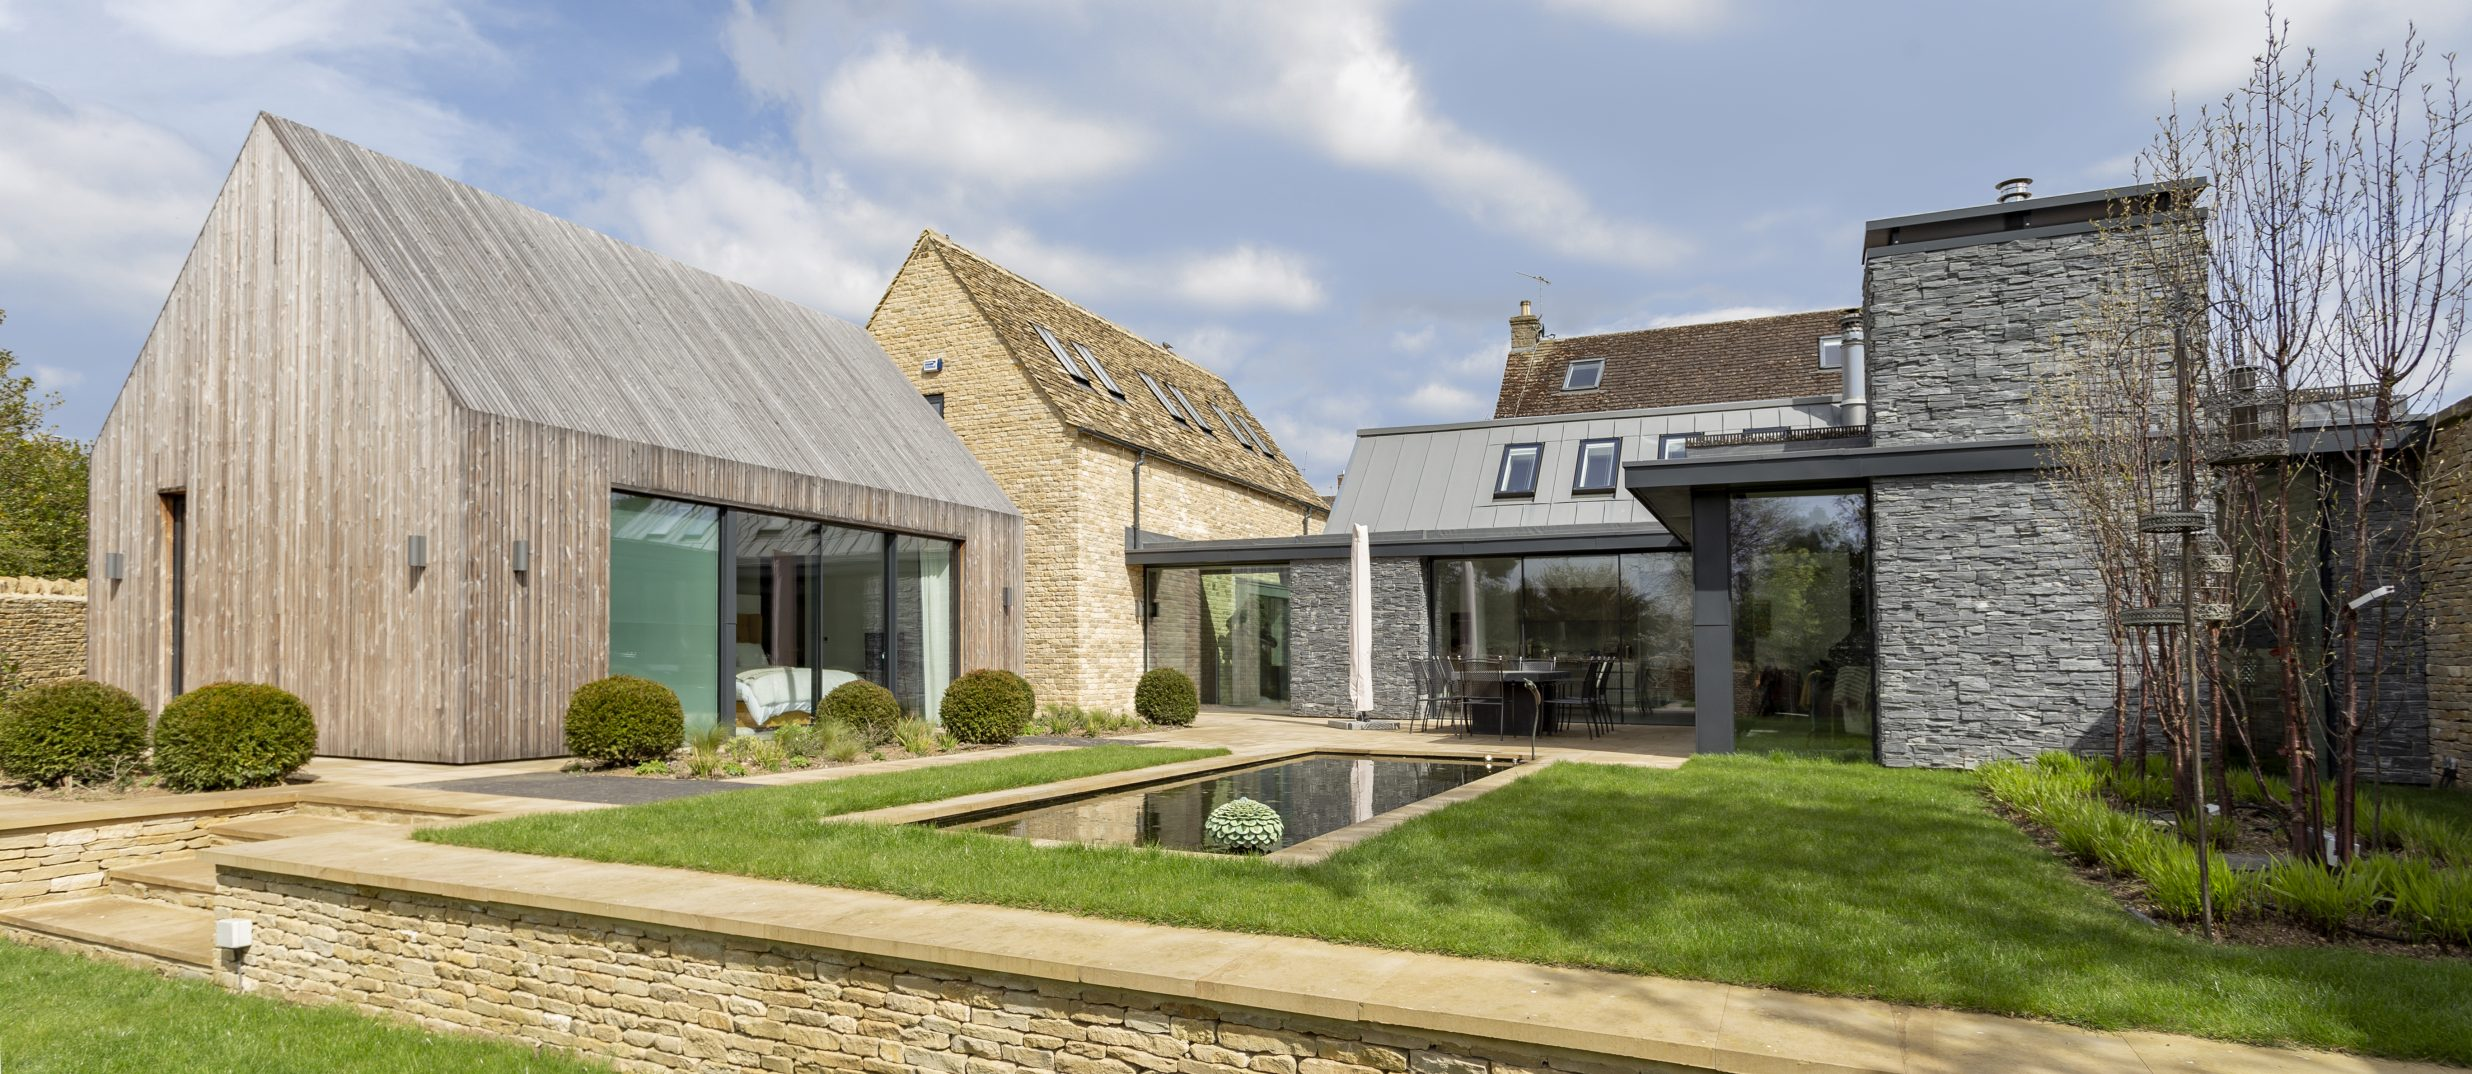 Hopkins Yard, Oxfordshire, West Waddy, Architects, Town Planners, Urban Designers